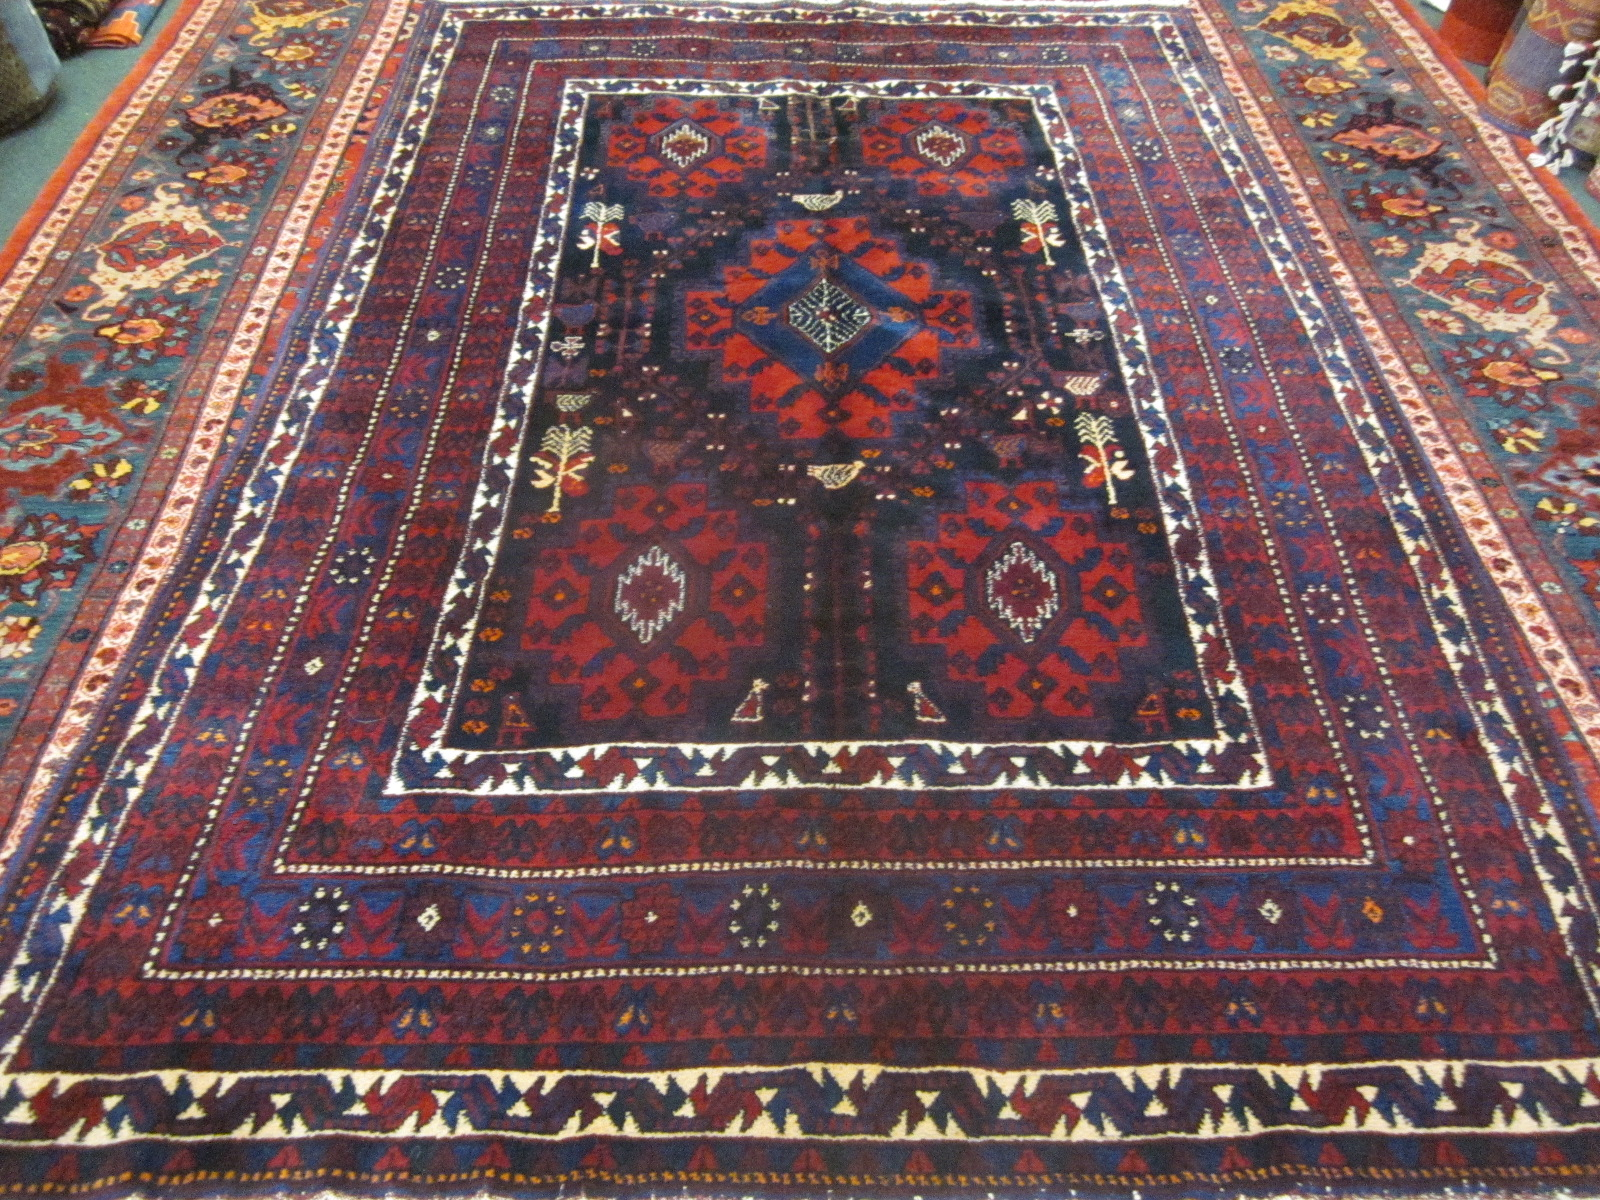 #34) Semi-antique Persian Afghar rug. 5 x 7